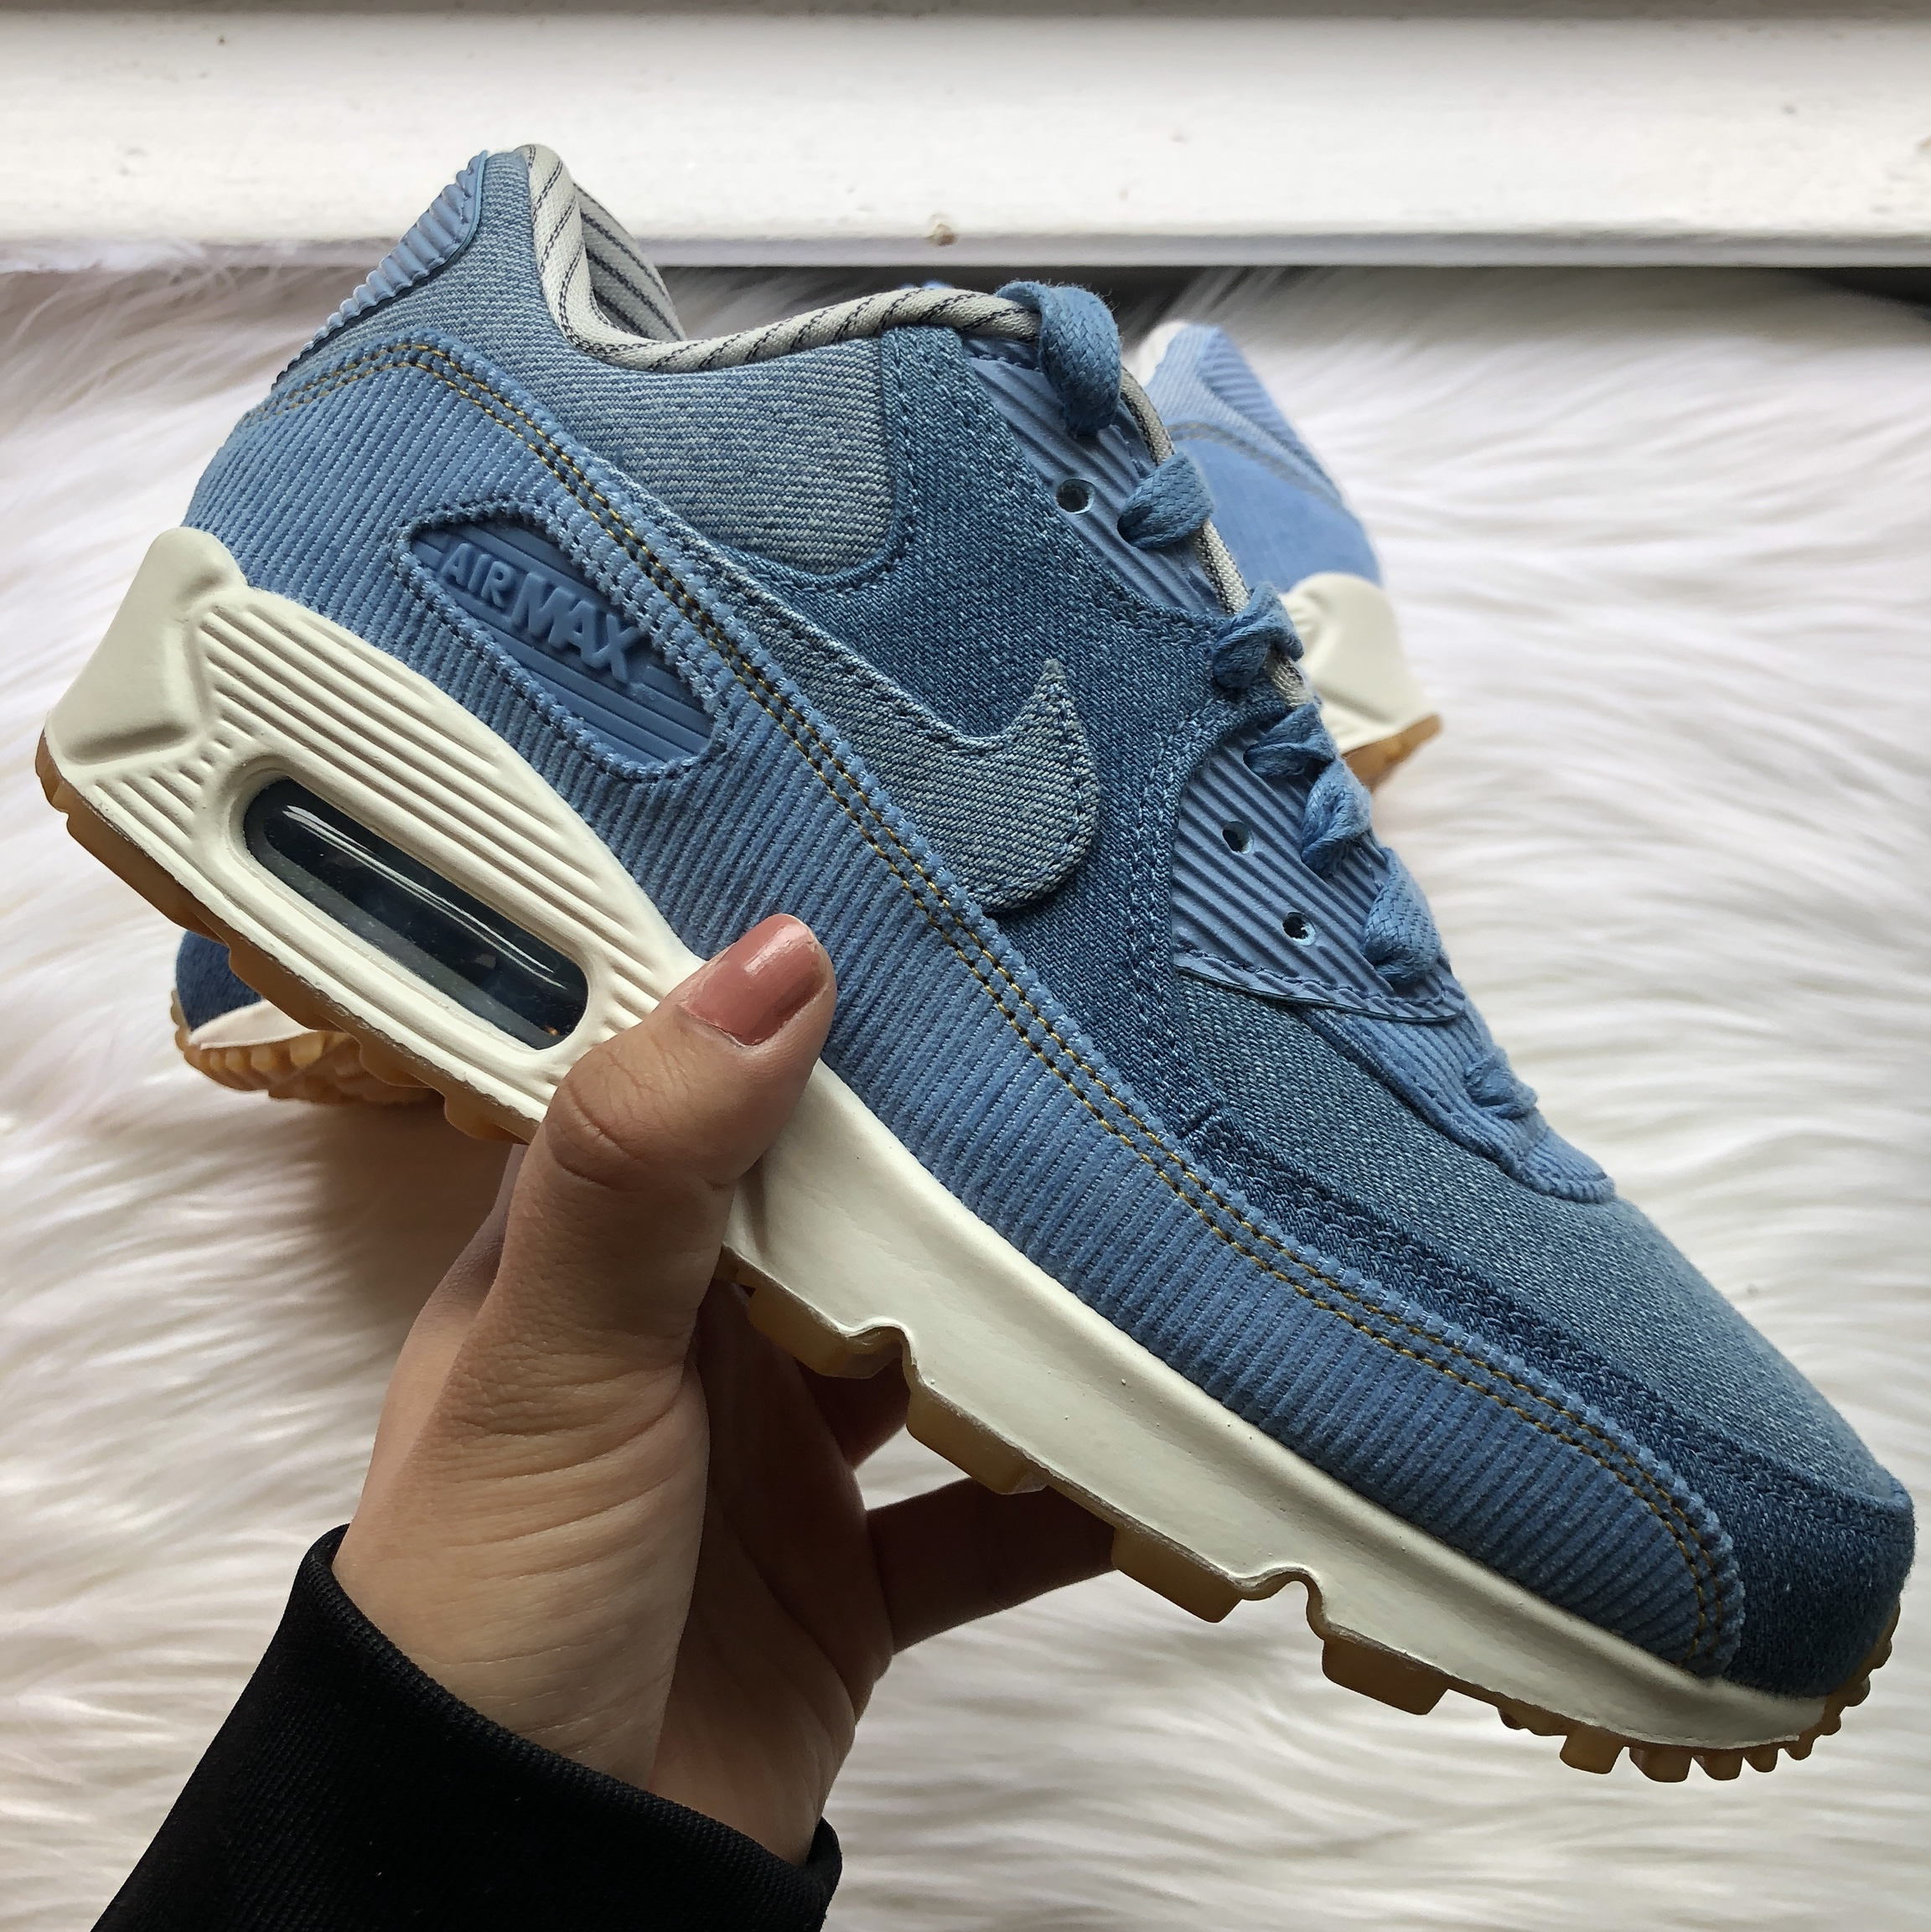 LOWEST. Nike Women Airmax 90 SE size 6. New, never